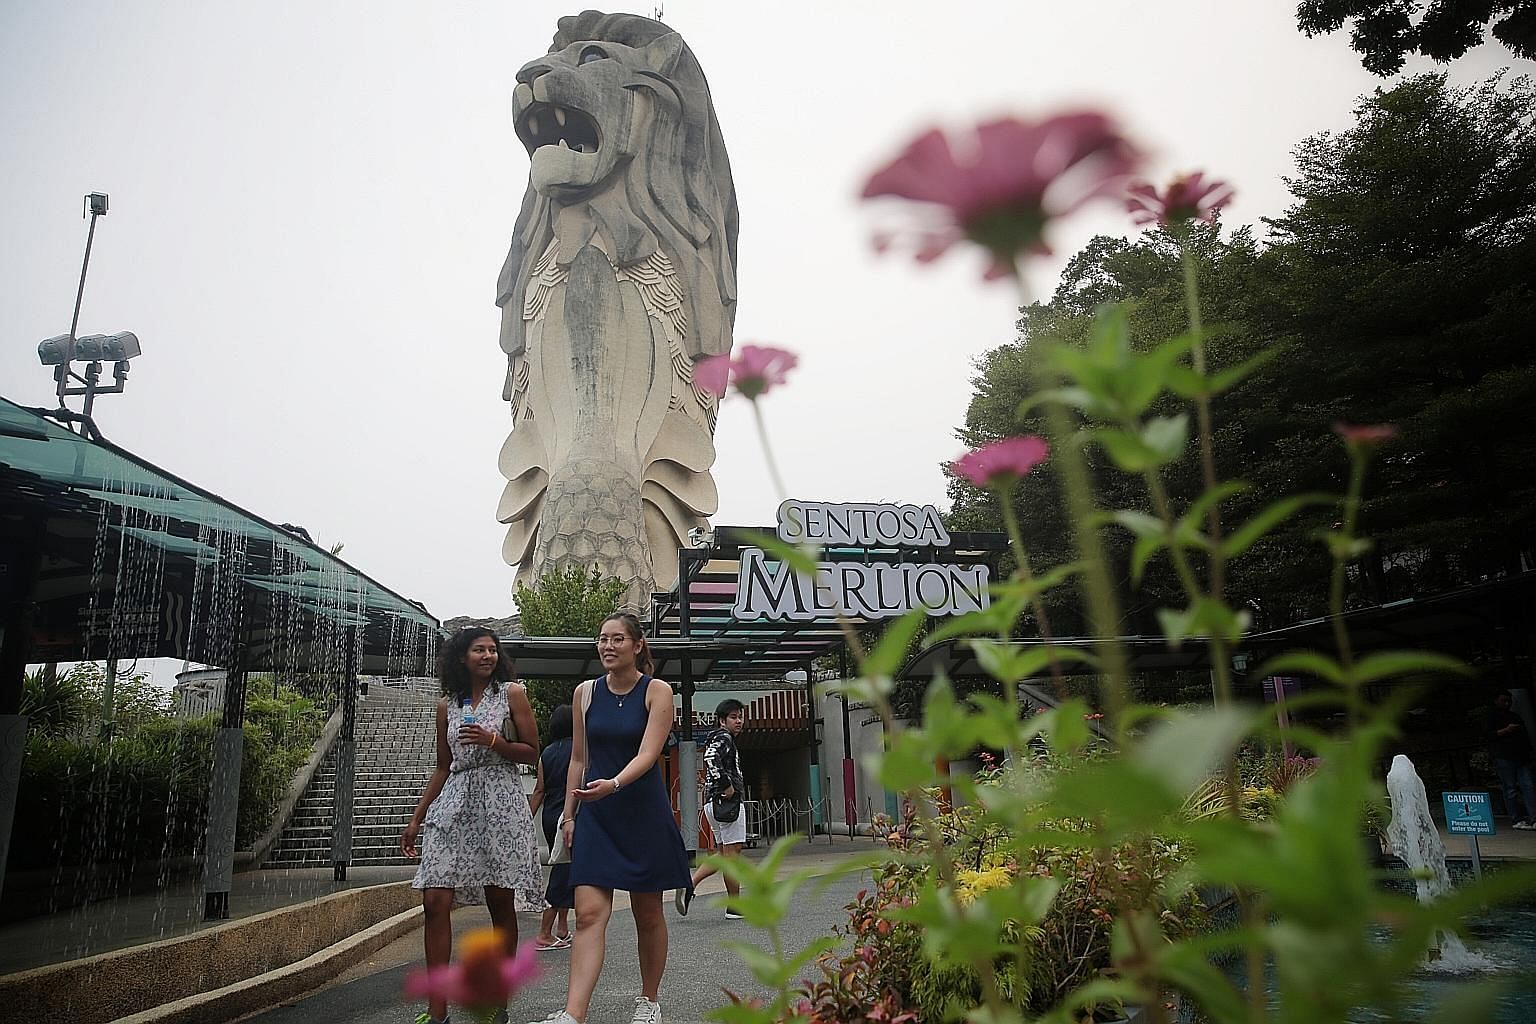 The Sentosa Merlion, the largest of the seven Merlion statues in Singapore, has towered over Sentosa for 24 years. Its last day of operation is Oct 20. ST PHOTO: JASON QUAH